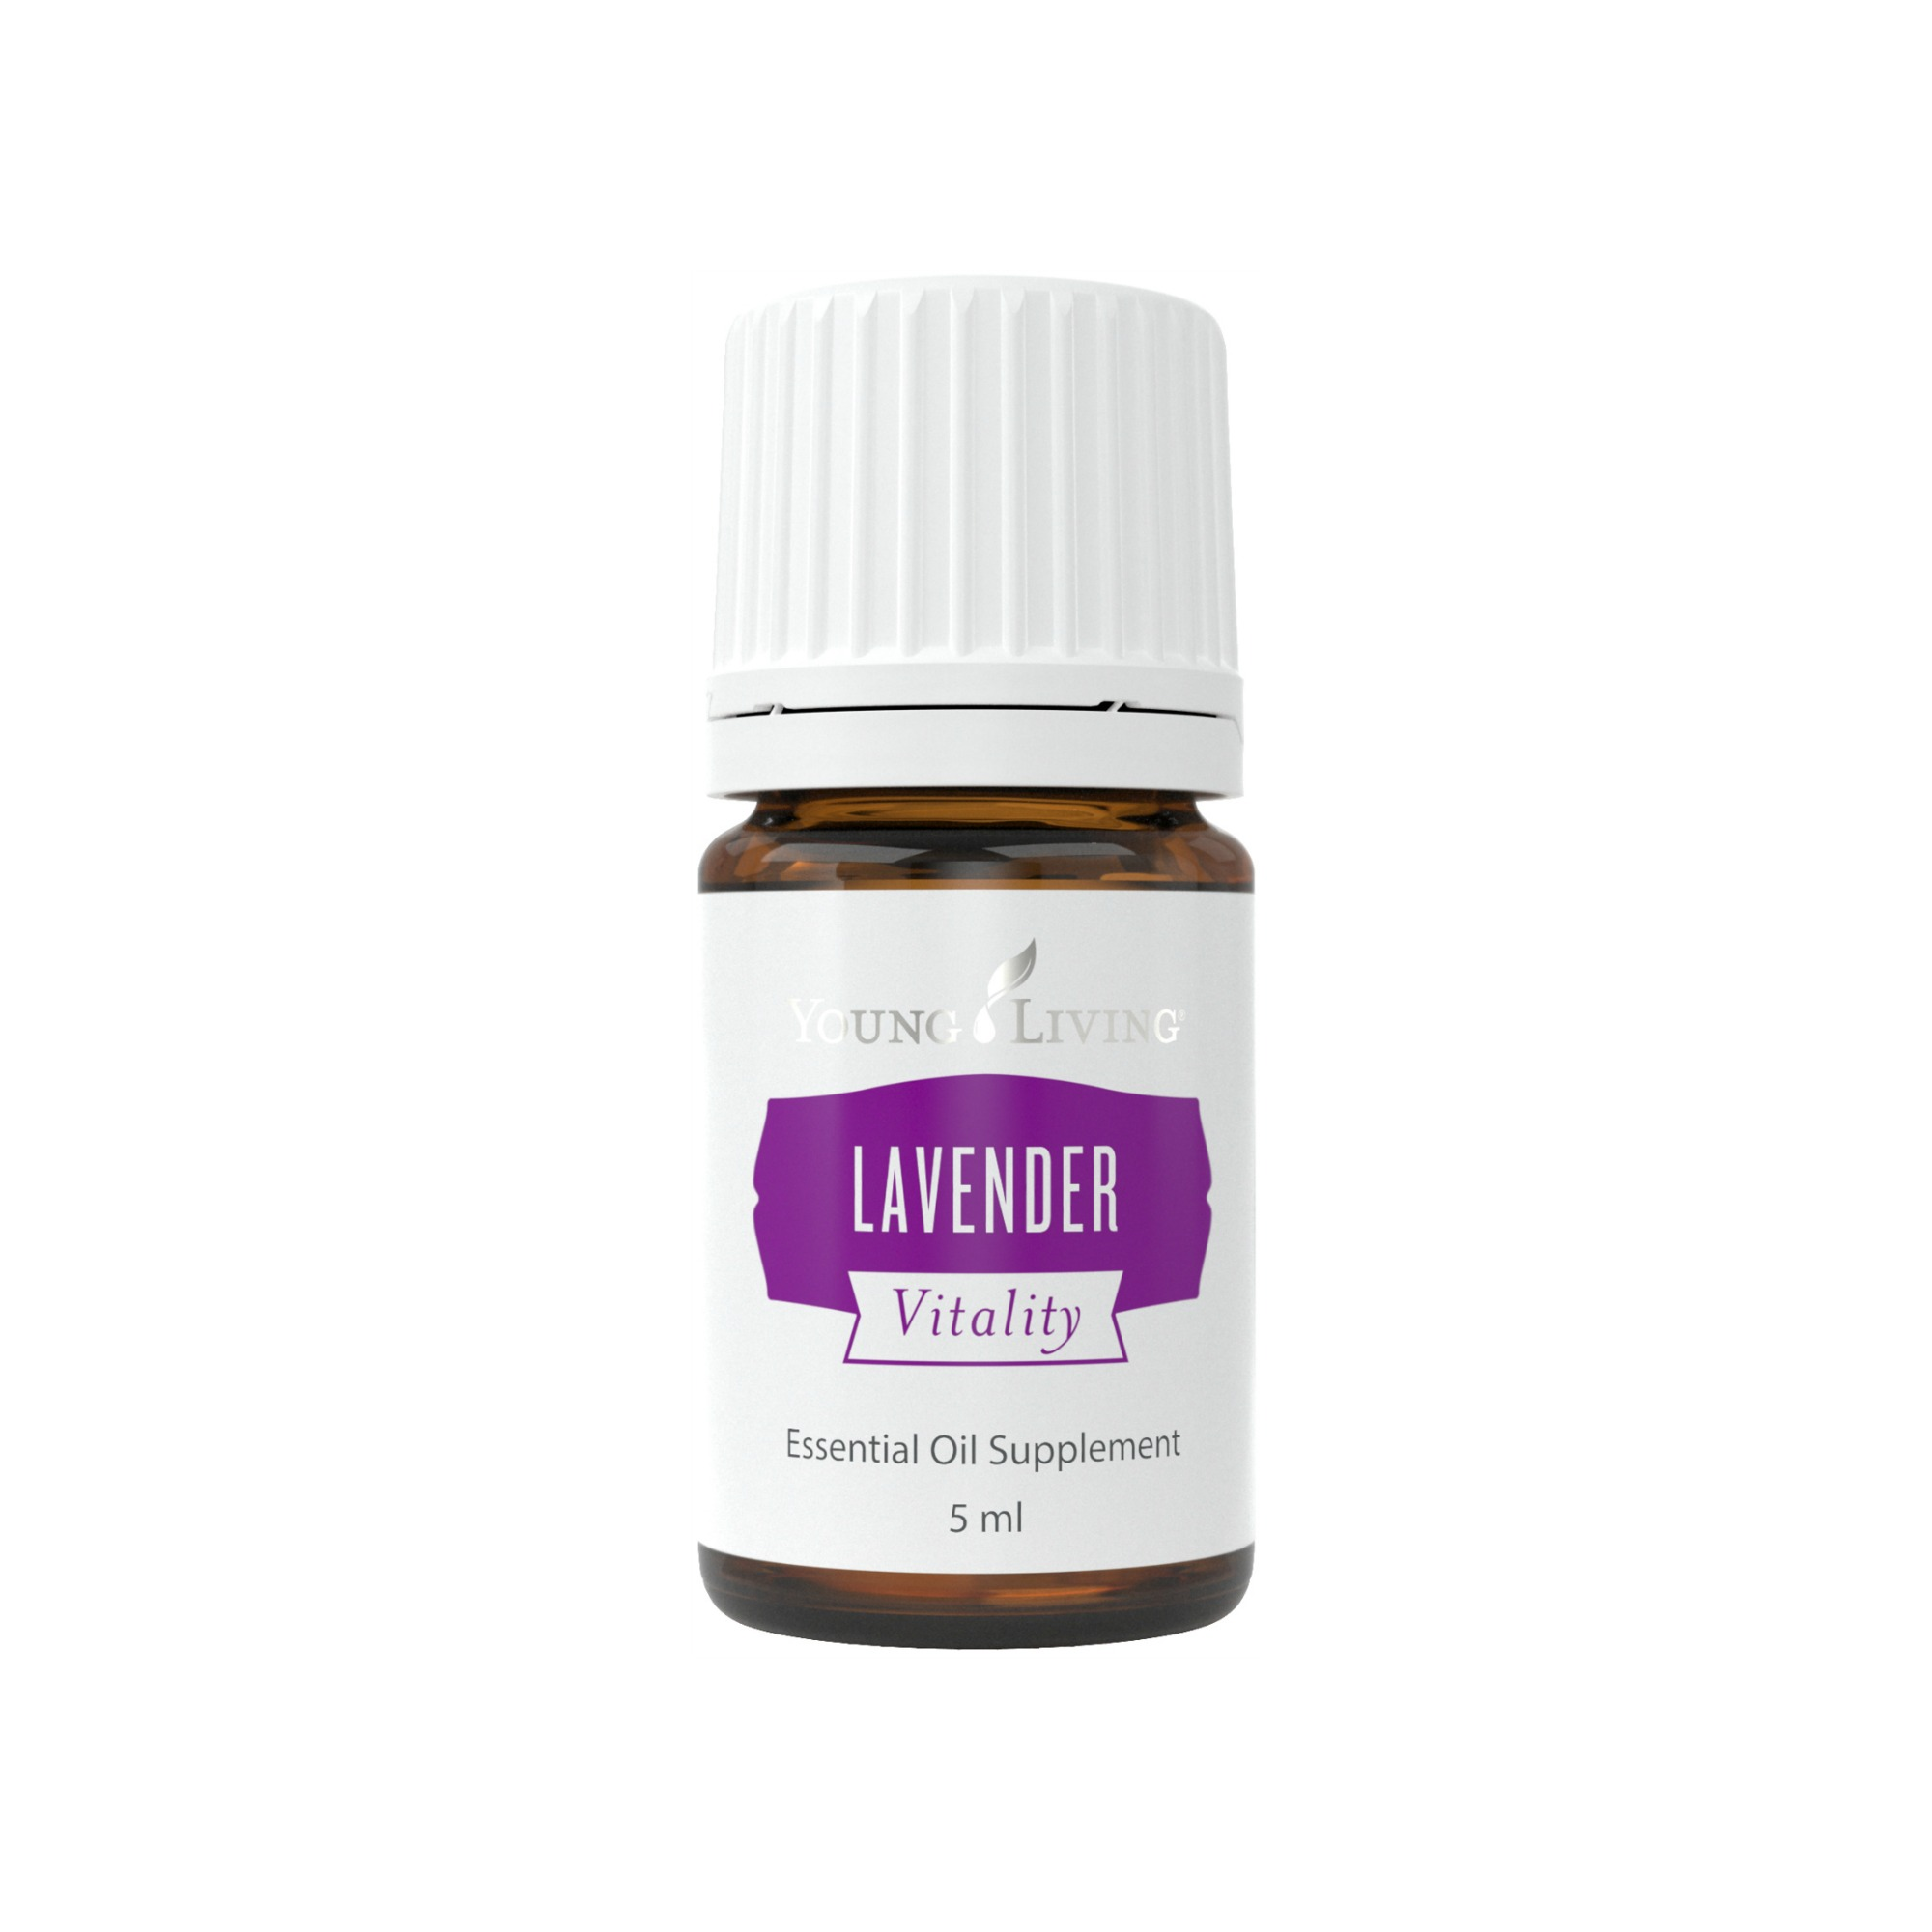 LAVENDER VITALITY    This celebrated oil offers a hint of elevated flavor to recipes and a wealth of dietary benefits as a supplement. Dip your toothpick into Lavender Vitality and swirl it through chicken and lamb marinades, or add a drop or two to cake batters and lemonades. This essential oil will add a sweet and slightly floral flavor that will be hard to forget!   Click here   to learn more about this product.